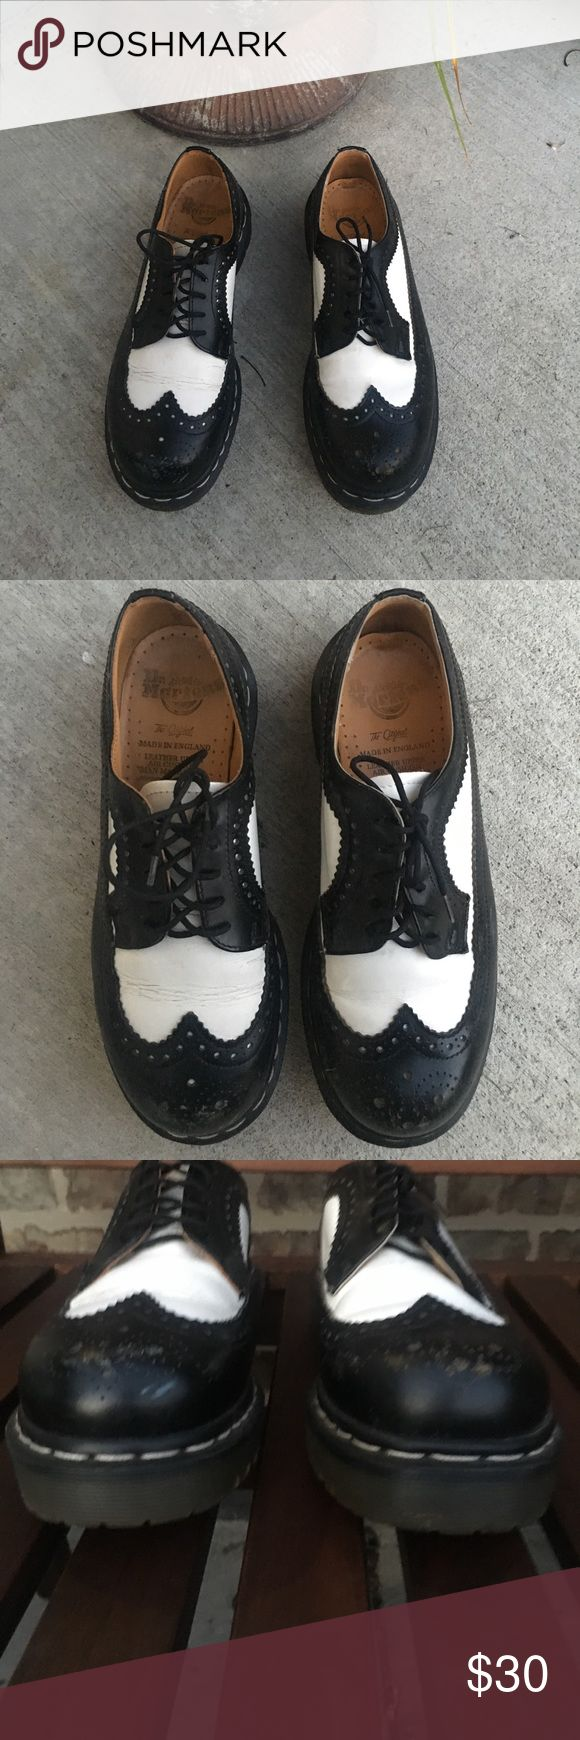 Used Dr. Marten Brogue Oxford wingtip shoes FIRST MADE IN THE MID-'60S, THE UNISEX 3989 BROGUE SHOE FEATURES A UNIQUE COMBO OF BLACK-AND-WHITE WINGTIP STYLE WITH THICK, EXTRA-CHUNKY AIRWAIR™ BOUNCING SOLES — A REBELLIOUS UNION OF PROPER MENSWEAR, COUNTERCULTURE ATTITUDE AND PURE STYLE.  These show signs of wear but still have a plenty of life left (see pics) UK 6 (Women's 8/ Men's 7) Shoes Flats & Loafers